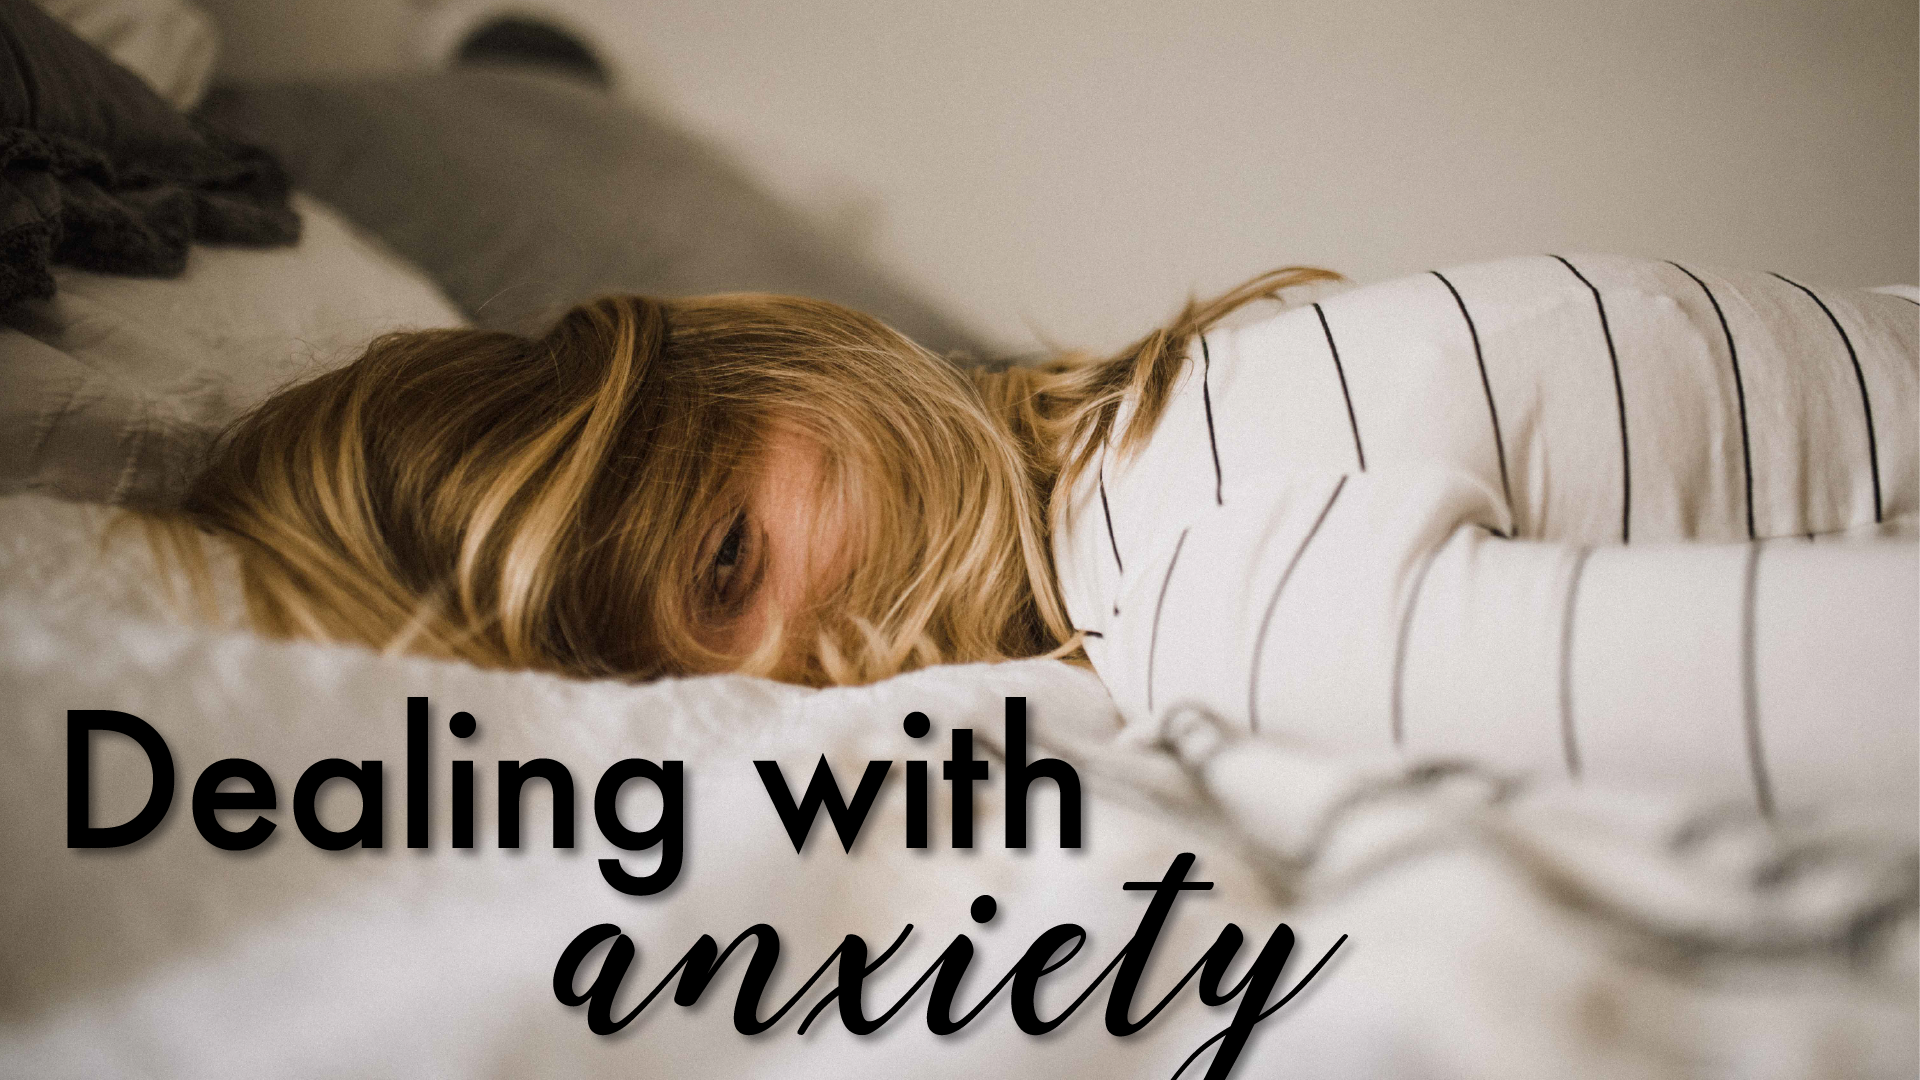 Dealing with anxiety blog cover